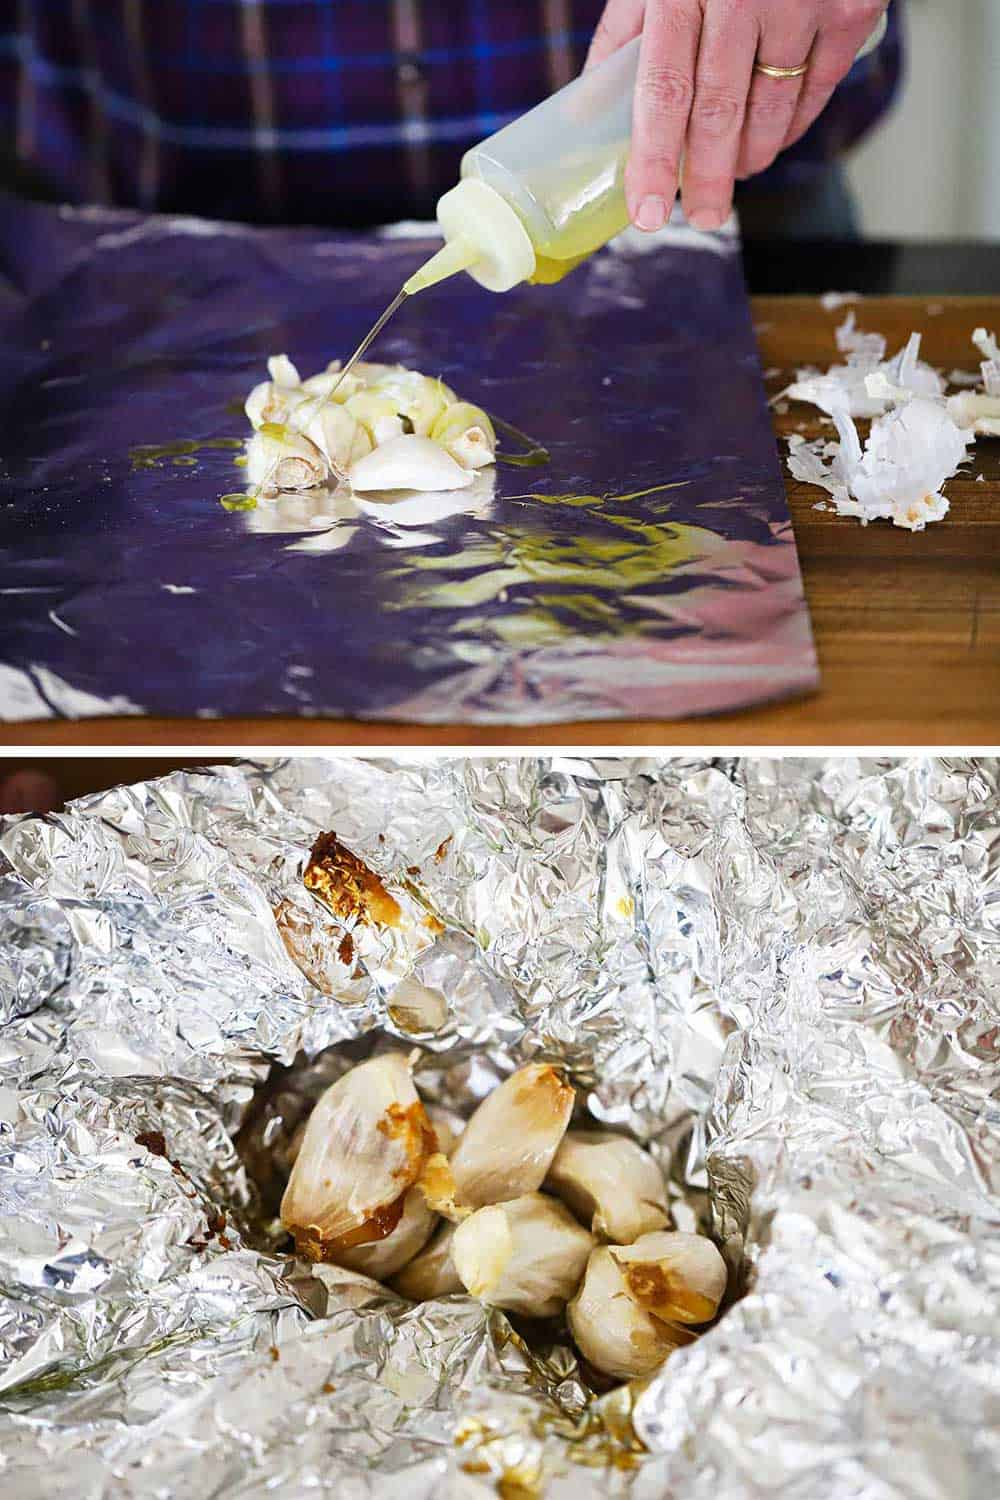 A person squirting olive oil onto garlic cloves on a piece of foil and then the same garlic after being roasted still on the foil.